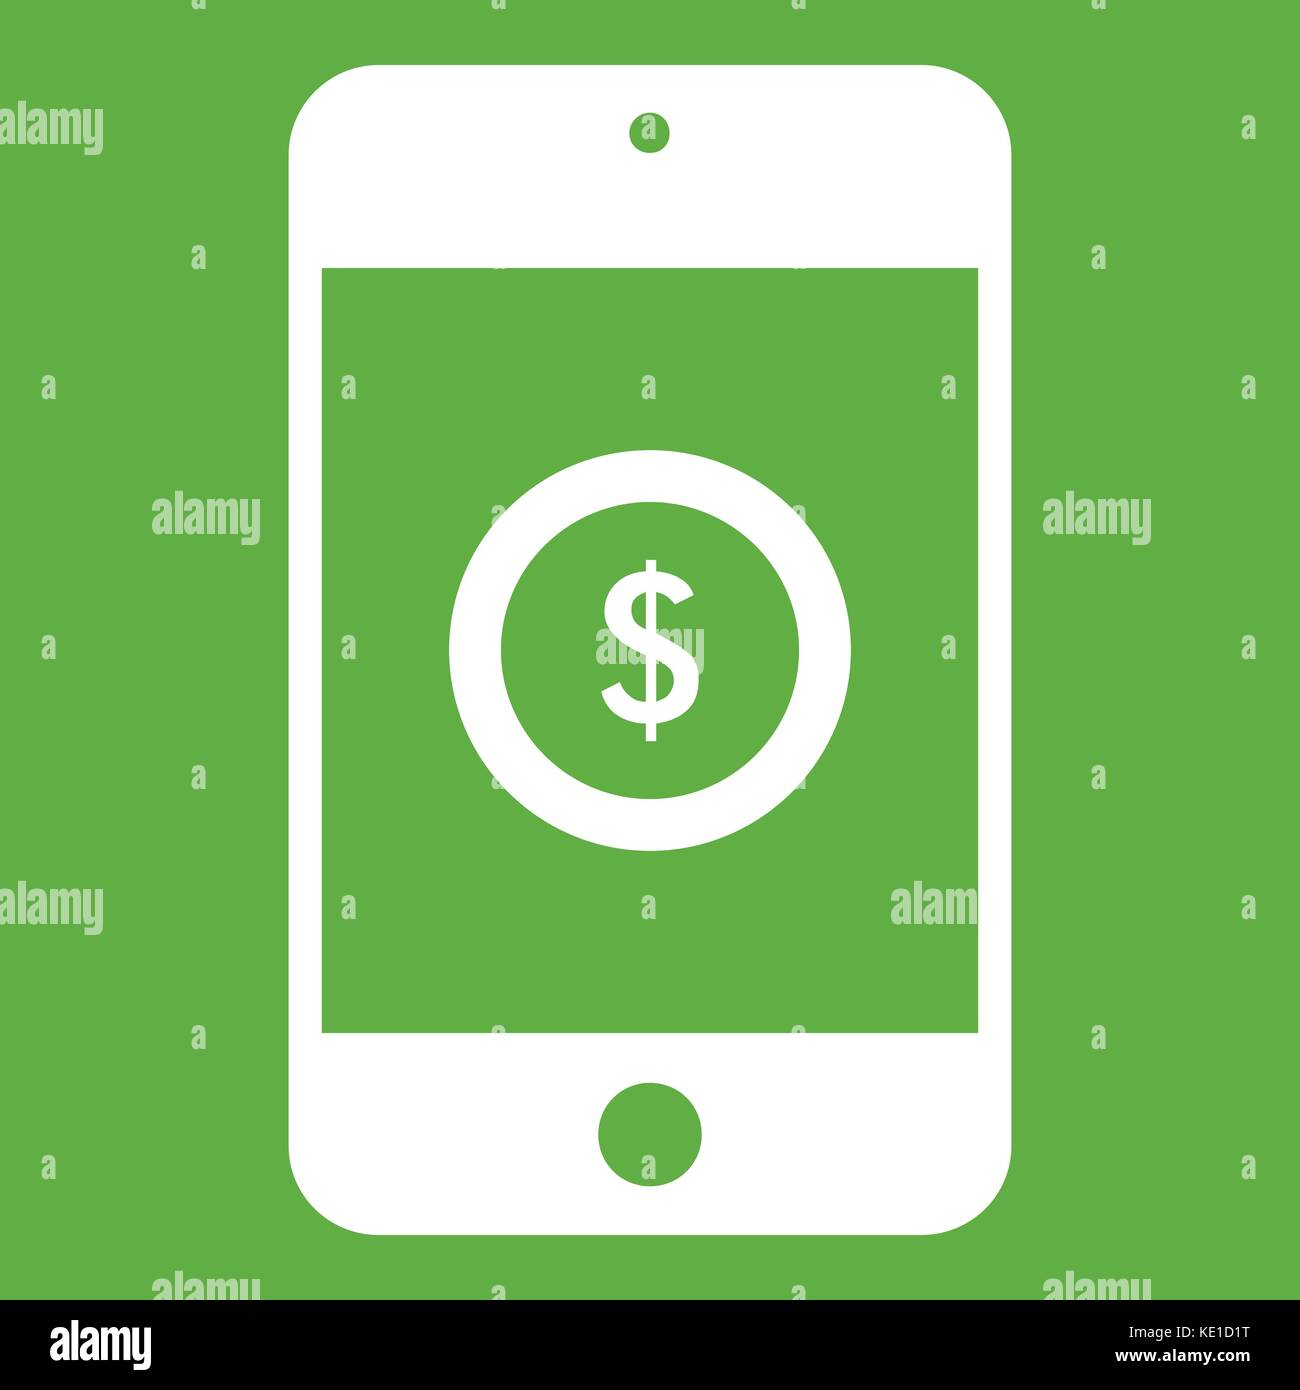 Smartphone with dollar sign on display icon green - Stock Vector